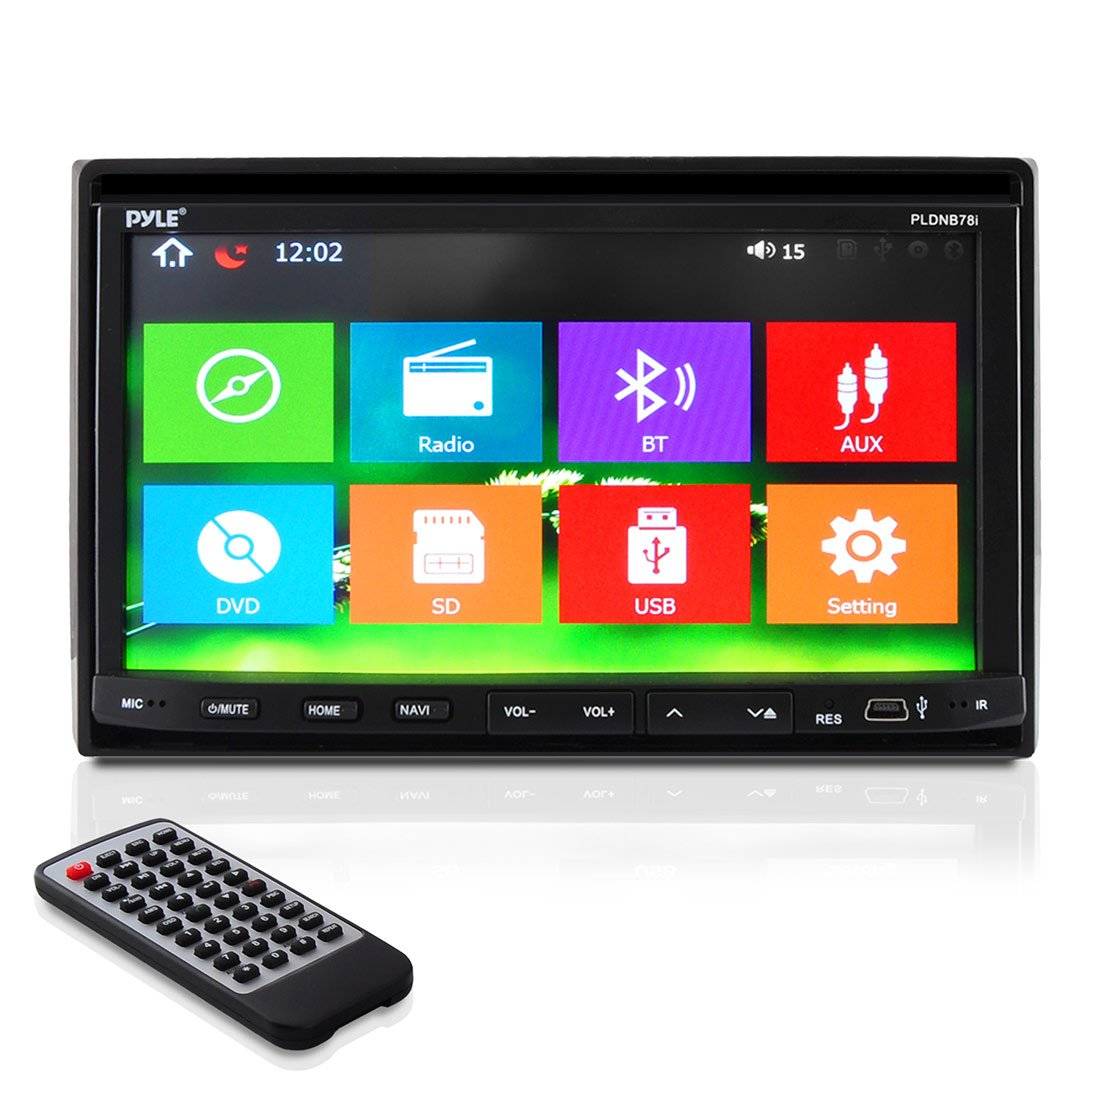 7'' Double Din Car Stereo - In Dash Receiver with GPS Navigation, Touchscreen, CD/DVD Player, Android System, LCD Monitor Screen, MP3, USB, SD, FM Bluetooth Compatible- Pyle PLDNB78I